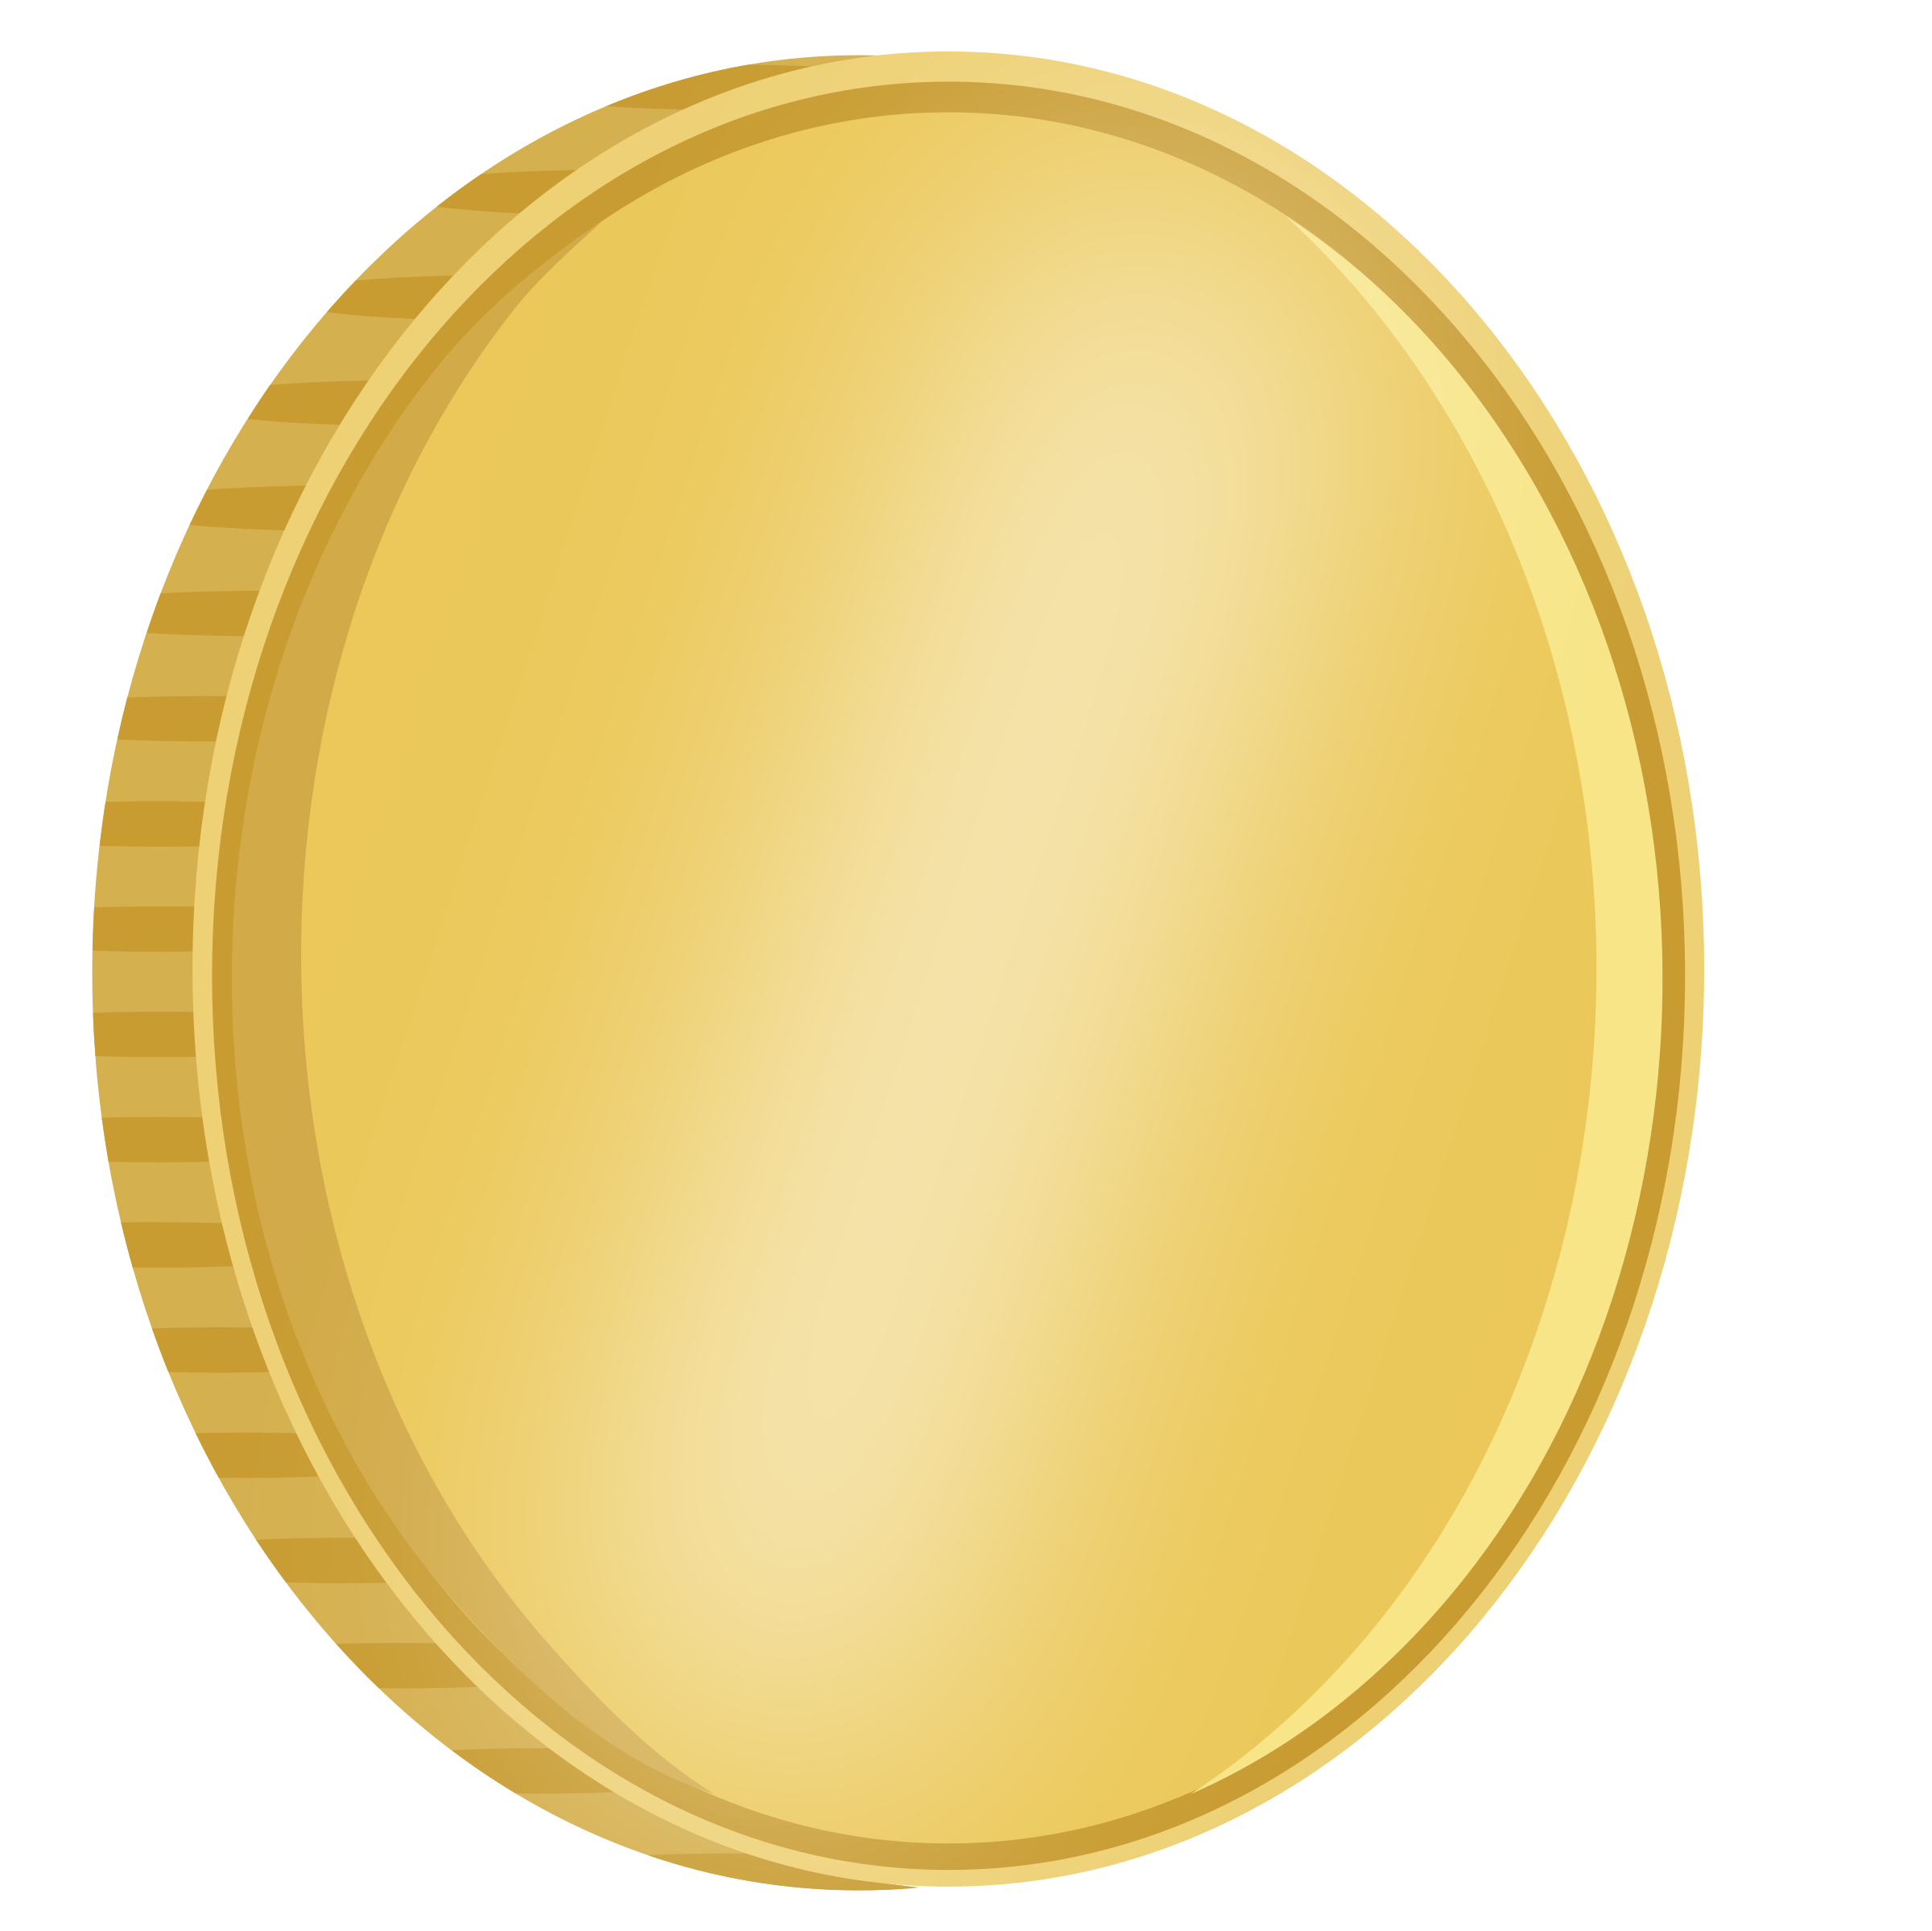 Gold Coin Png Clipart Best Web. BIG IMAGE (PNG)